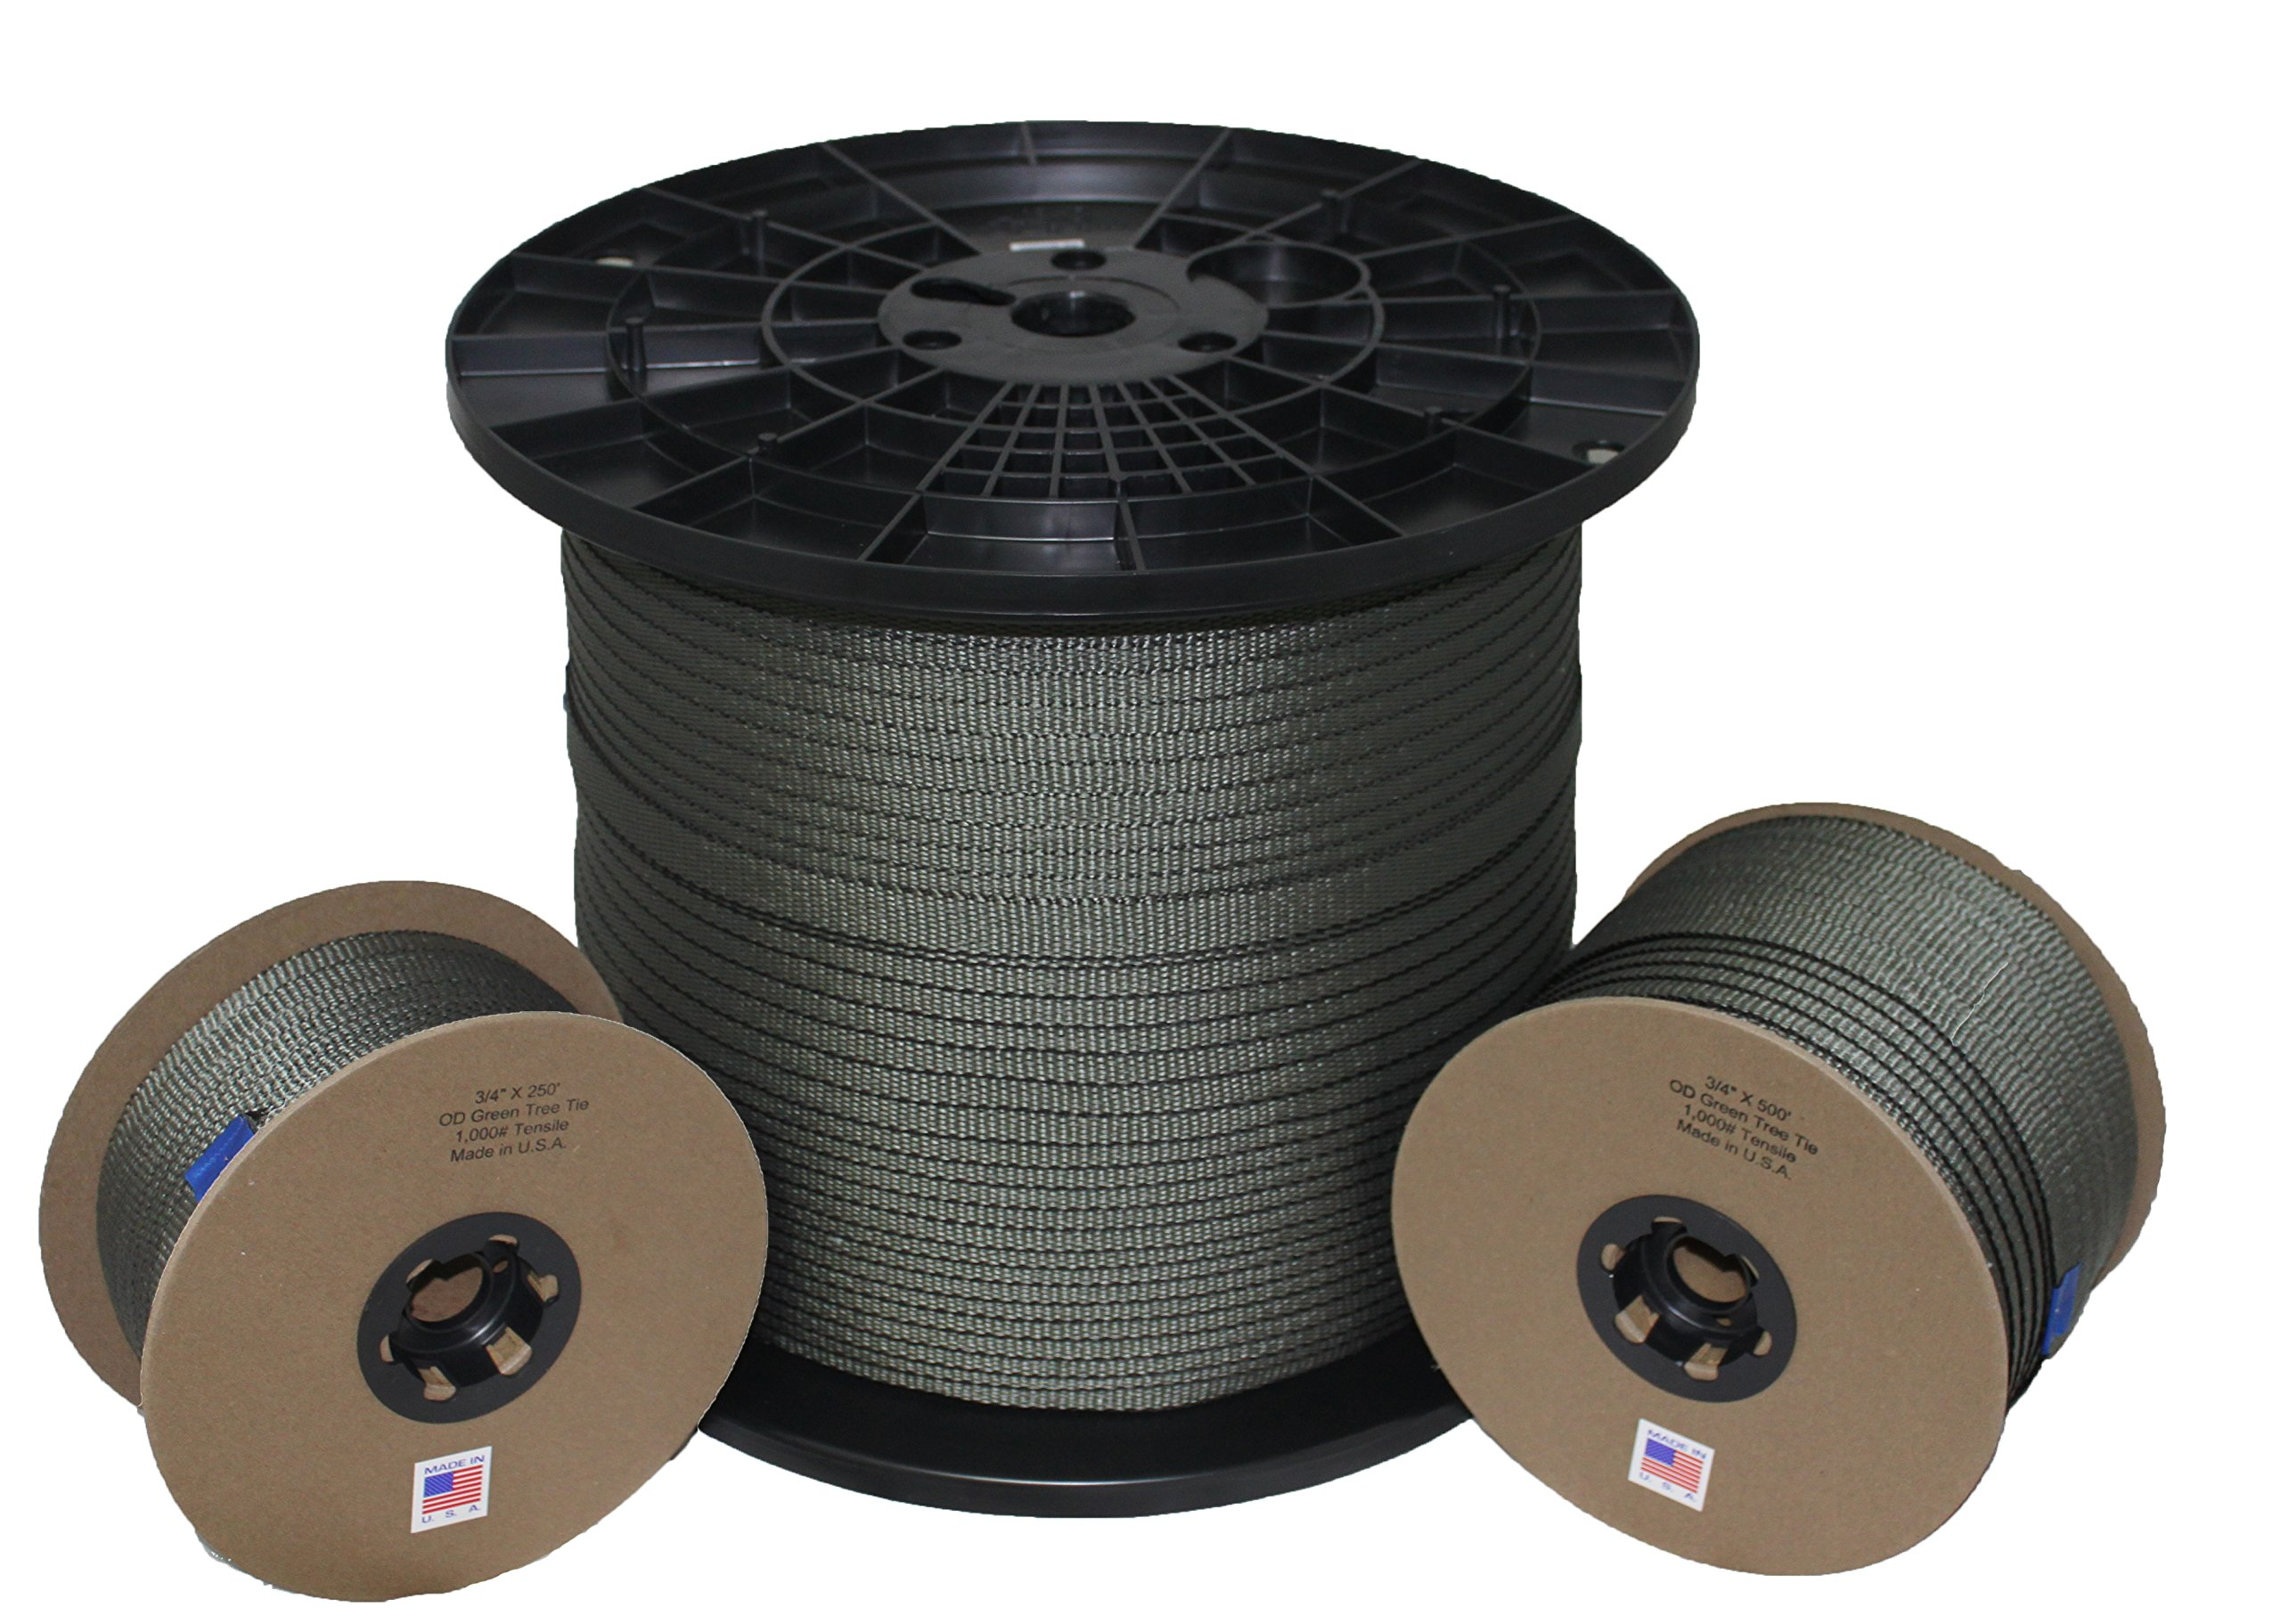 Tree Tie - 3/4 Inch - 1,000 lb. - Guying and Staking - Made in USA (3,000 Feet)